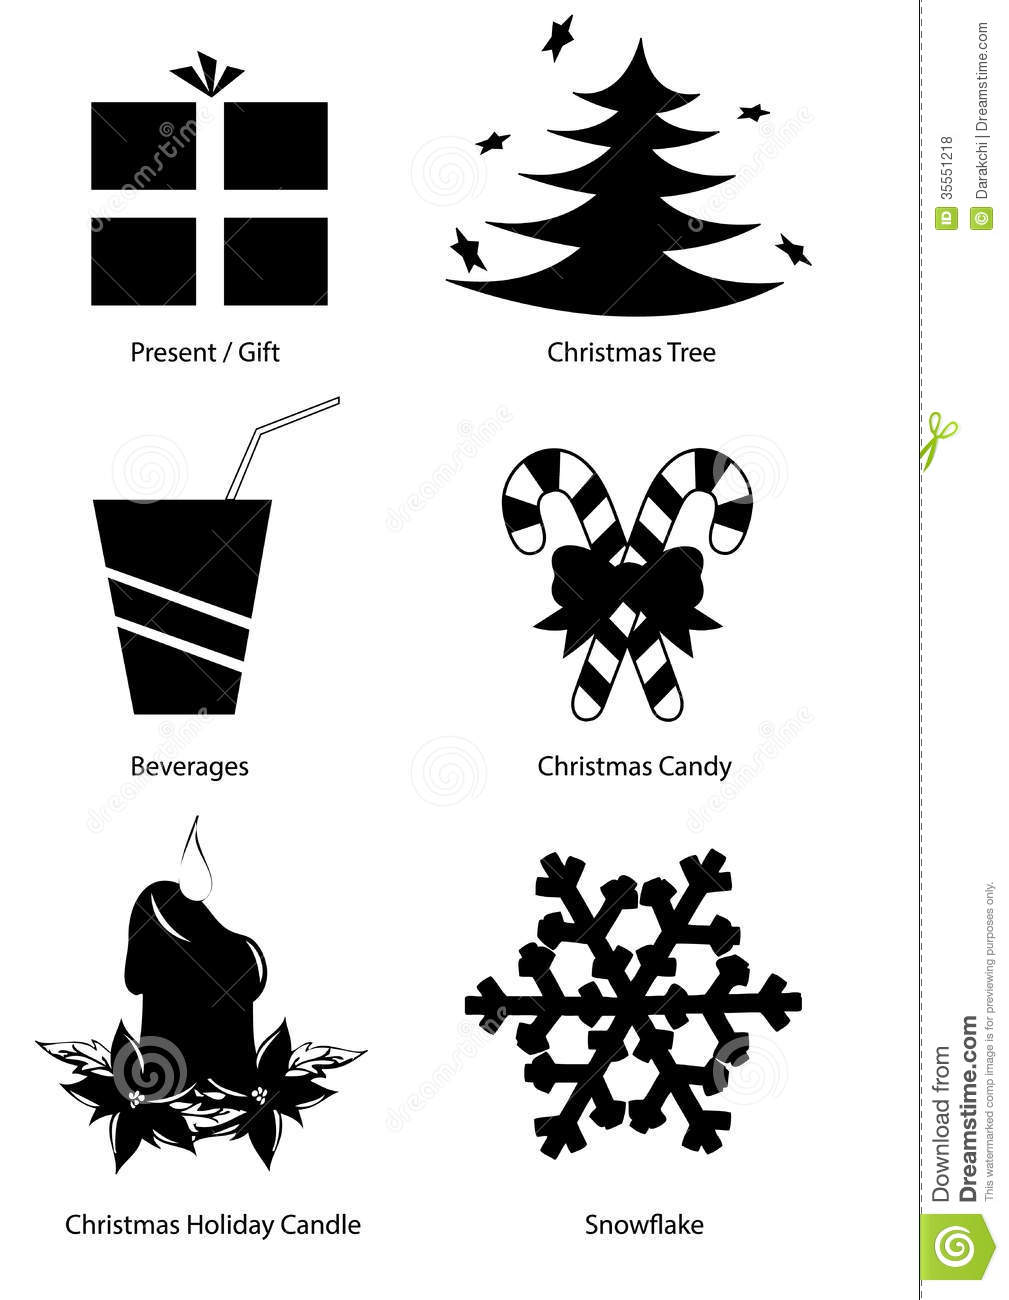 Christmas Images Clipart Black And White.16 Black Vector Art Christmas Images Christmas Tree Vector